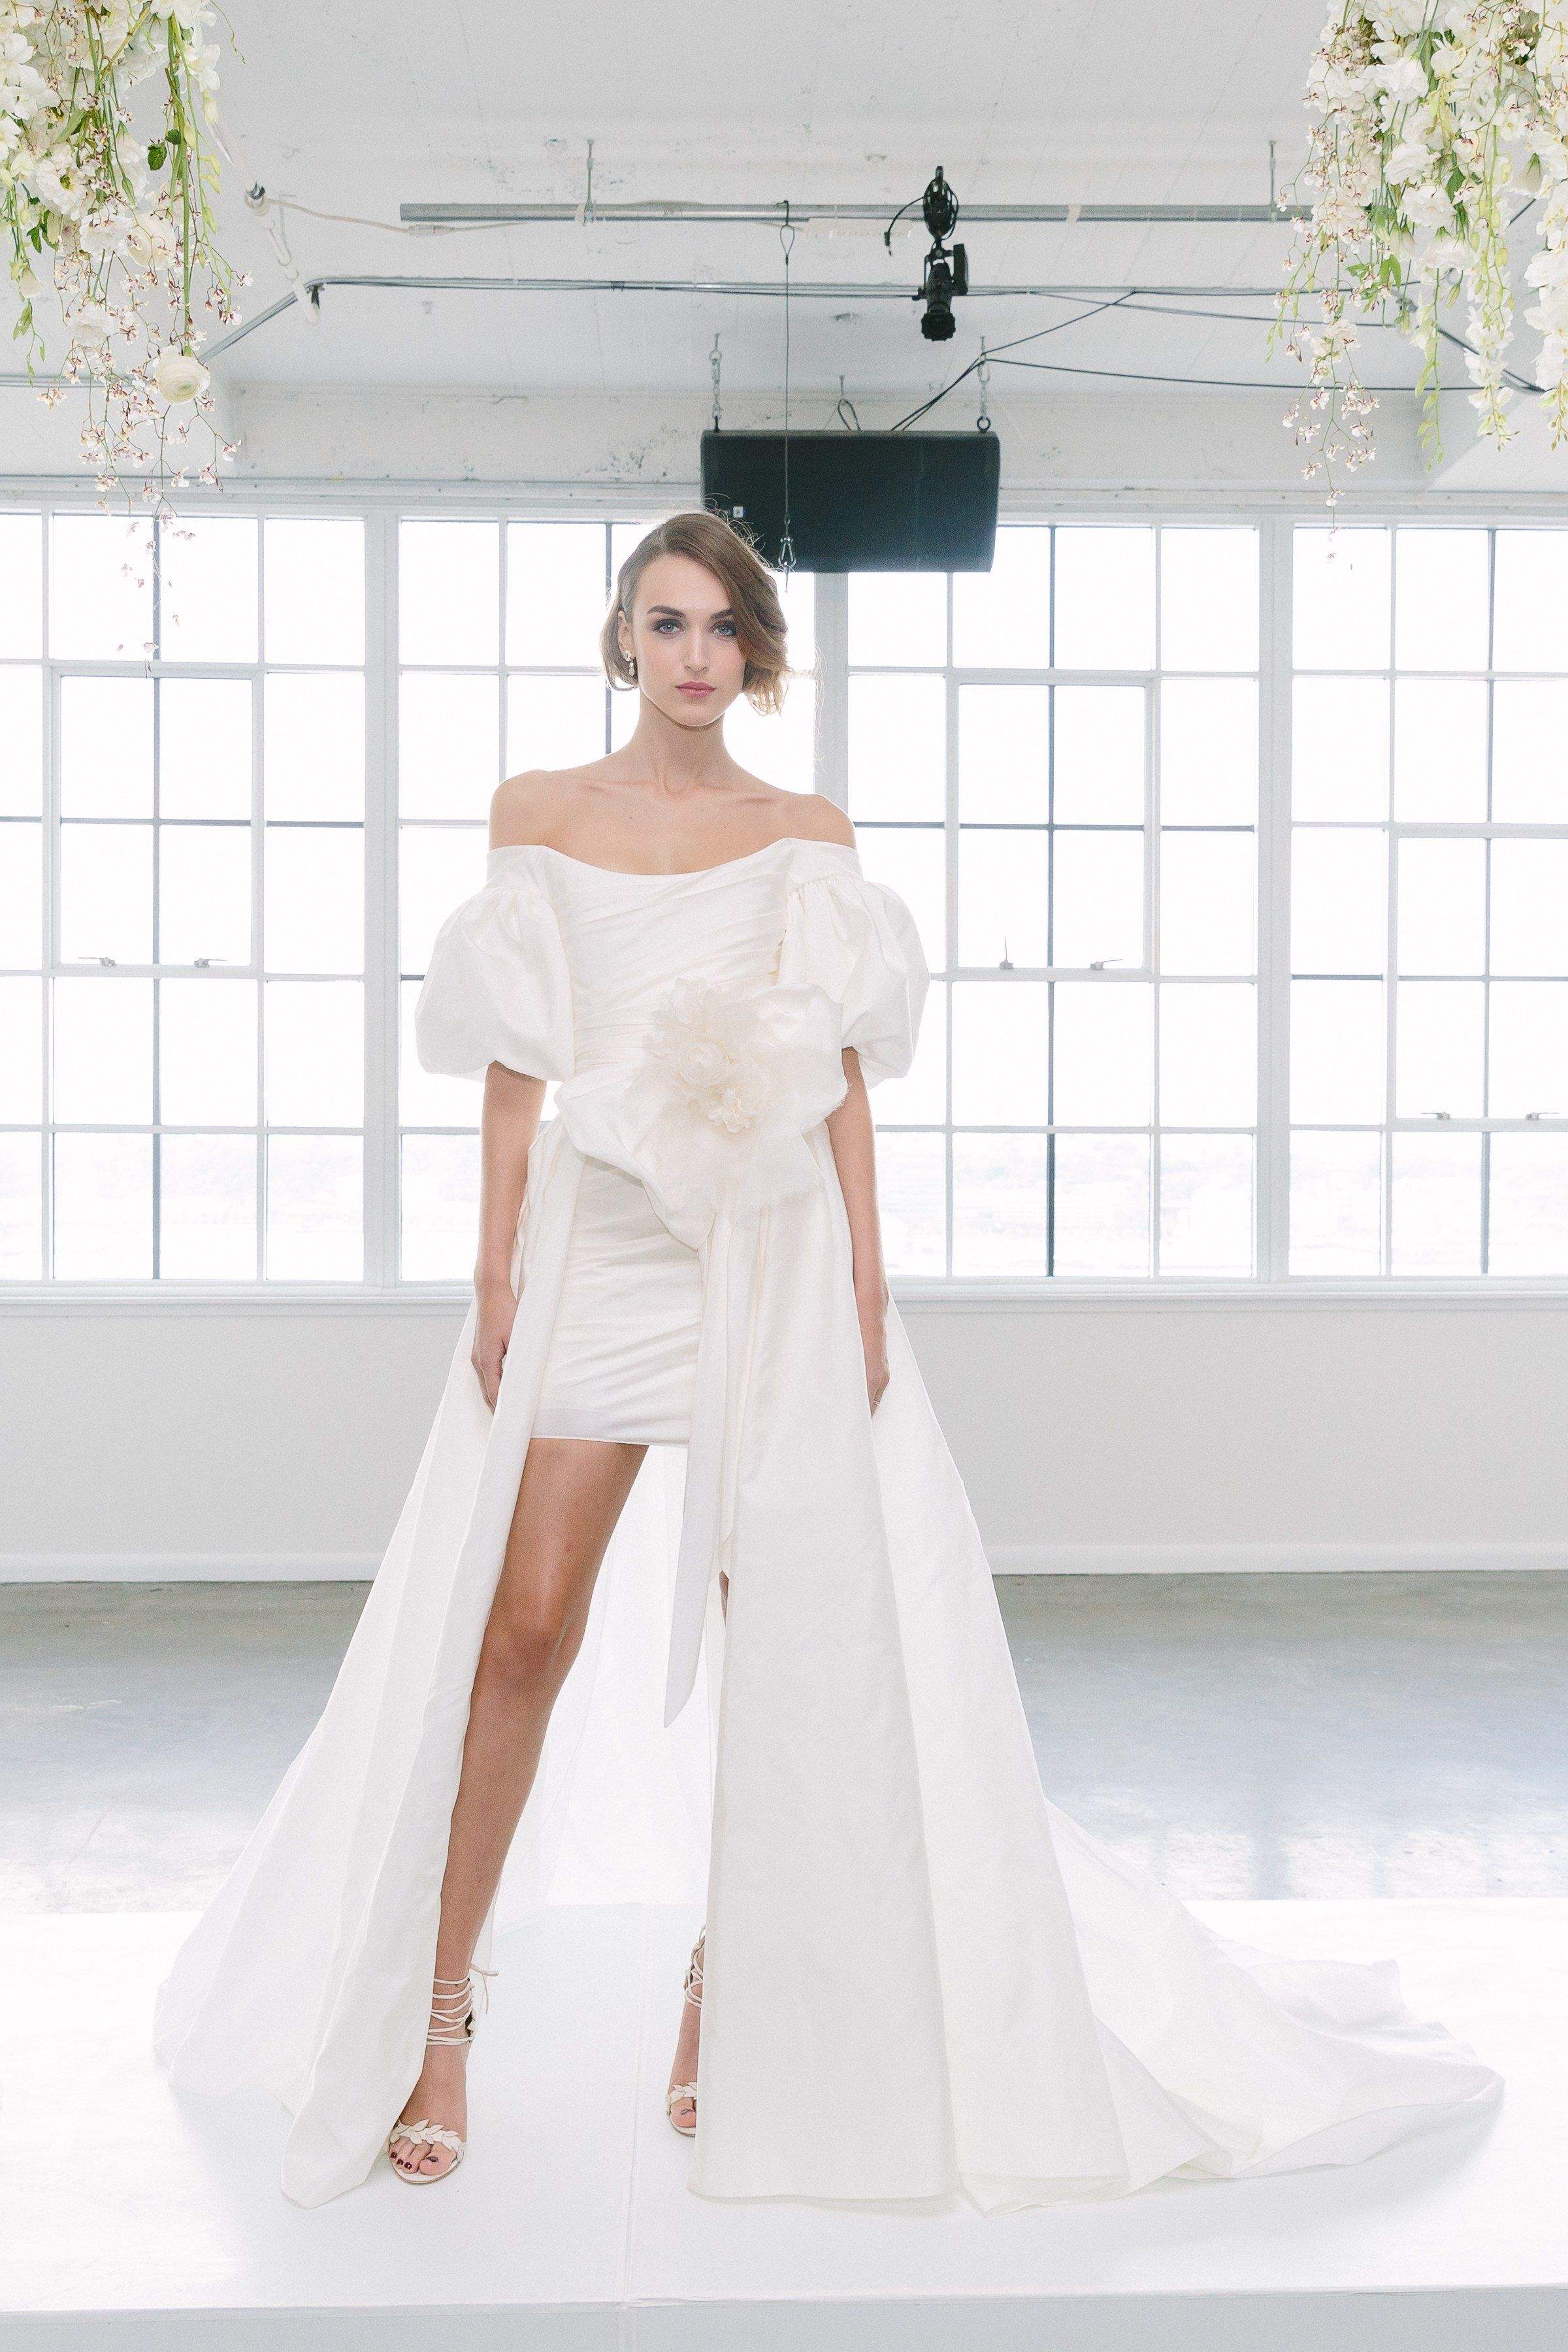 The fall wedding dress trends brides need to know brides